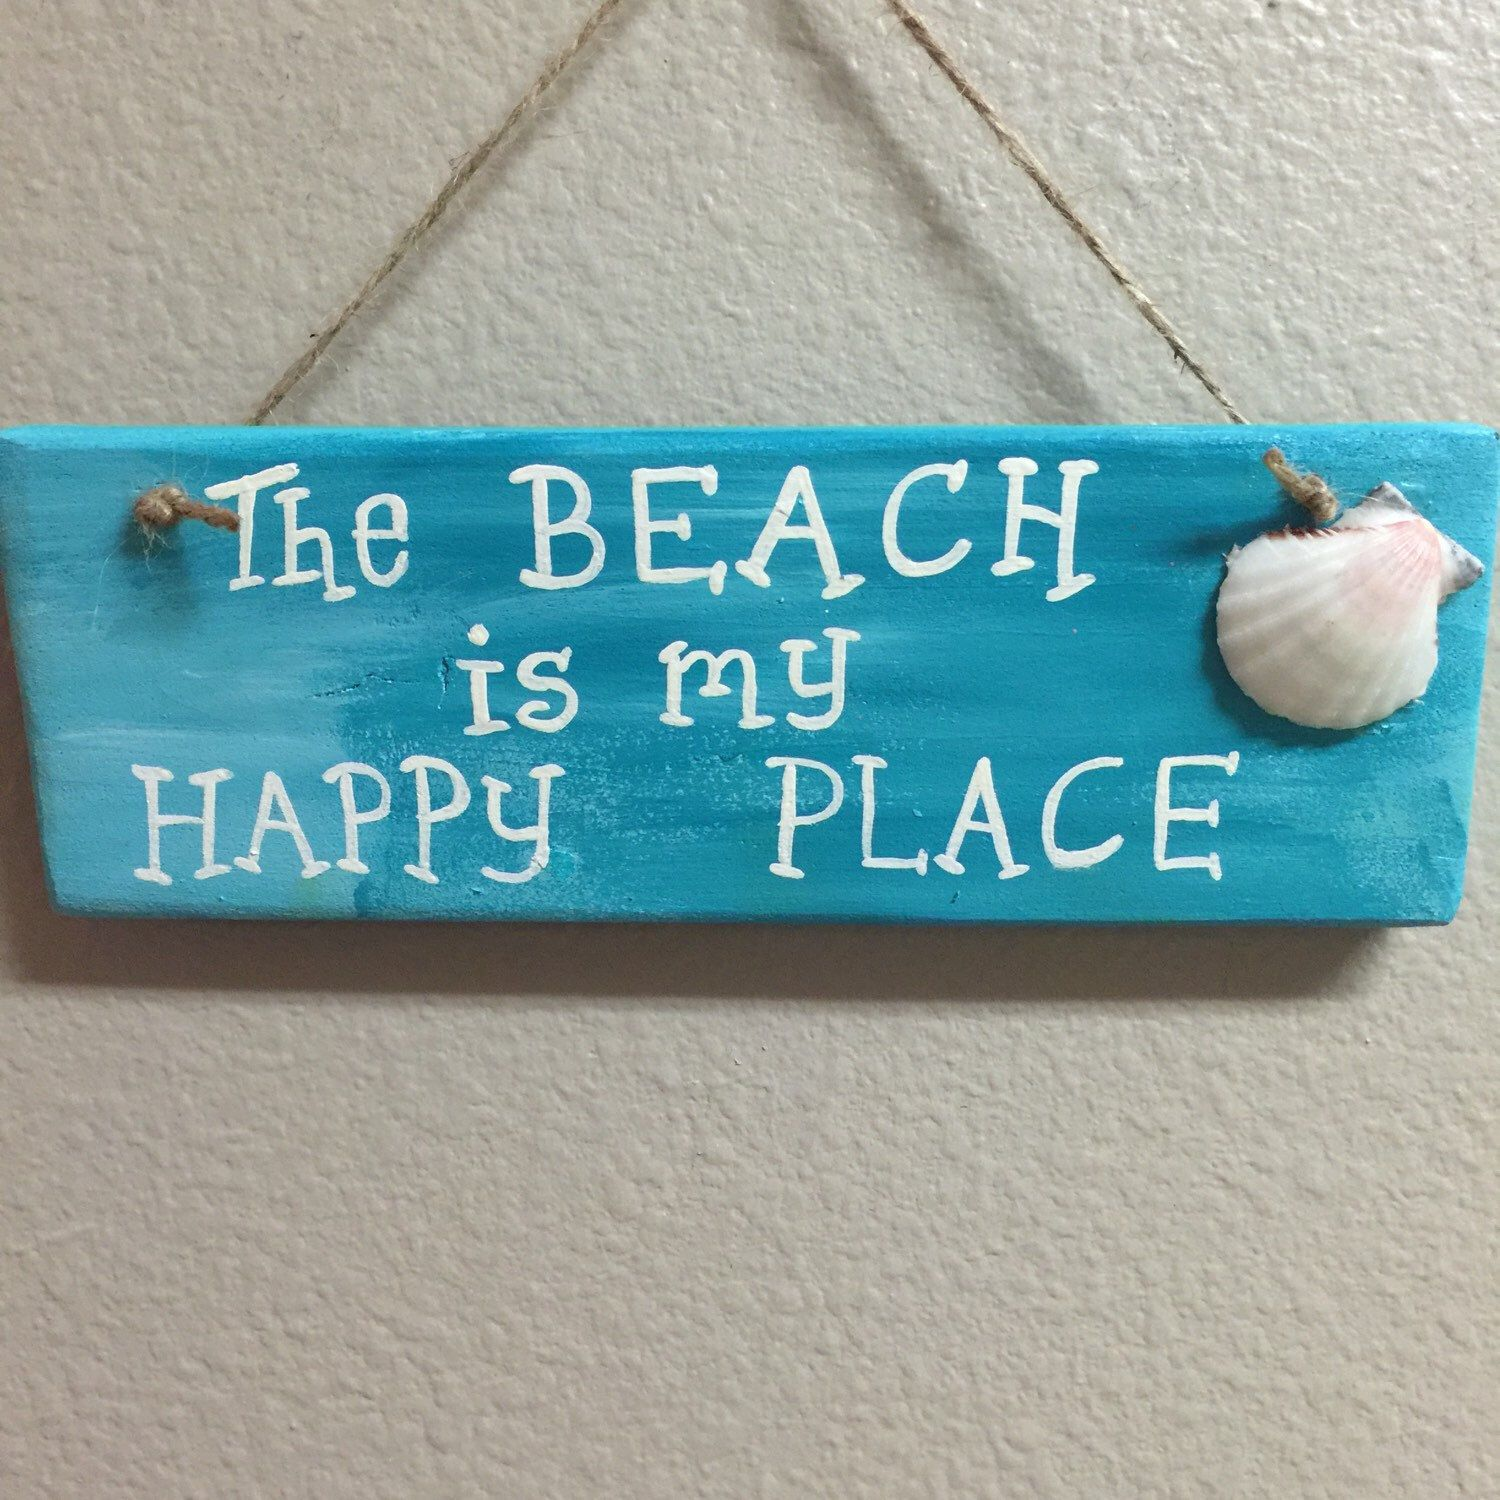 Happy place Wooden beach signs Beach wall decor Beach wood signs ...